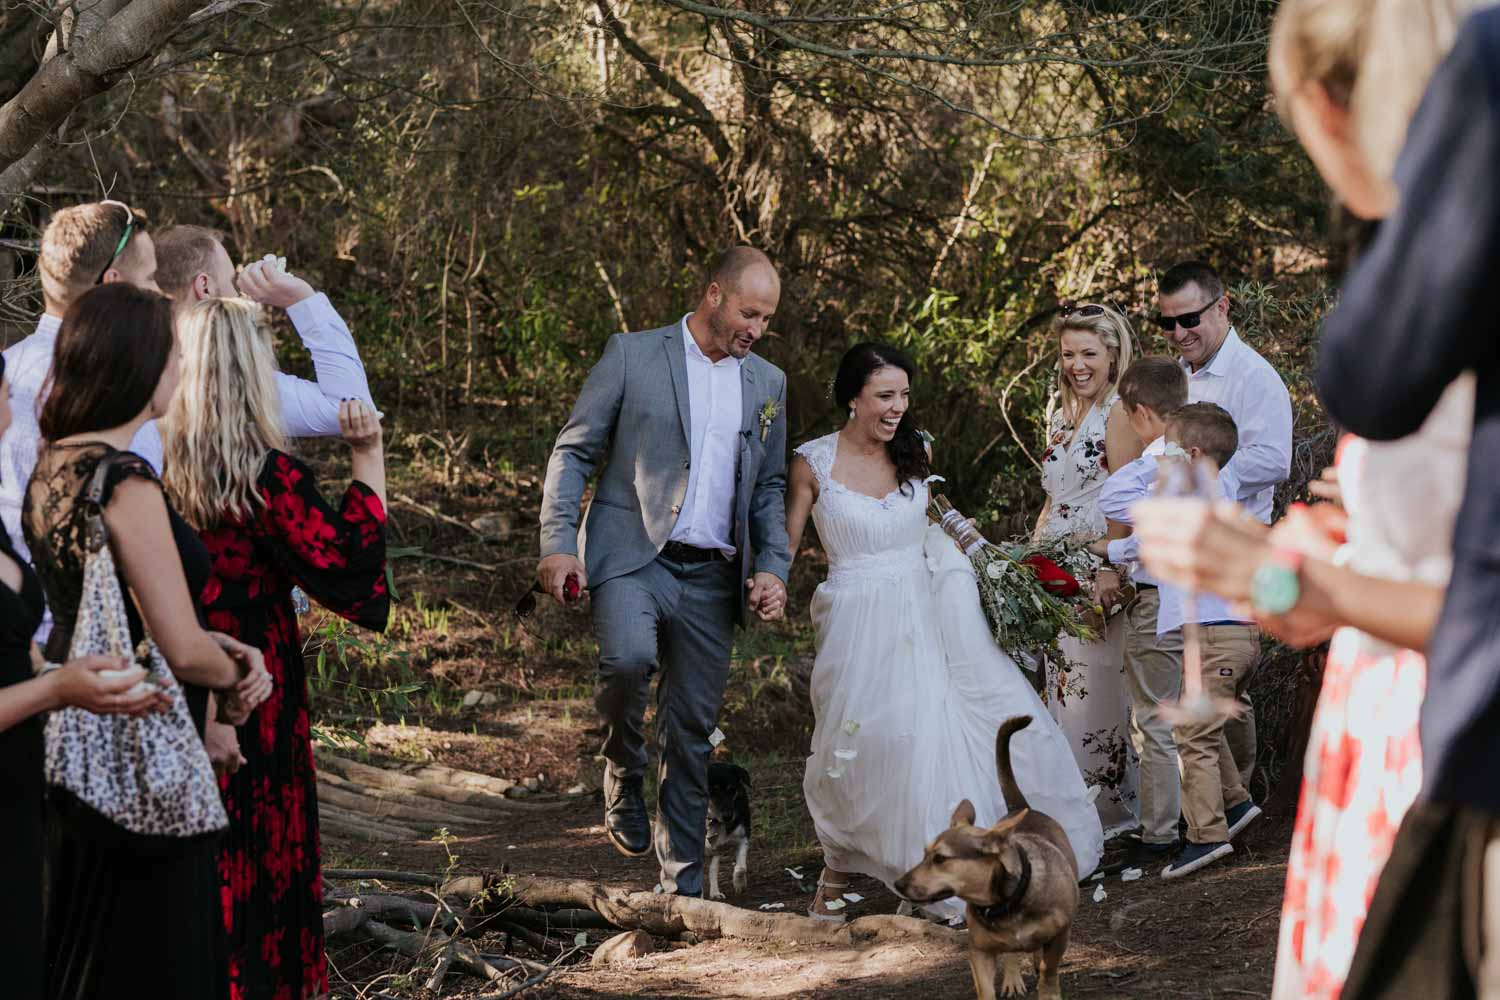 Guests throw rose confetti on husband and wife as they walk down a dusty farm road in Western Cape, South Africa with their dog leading the way.